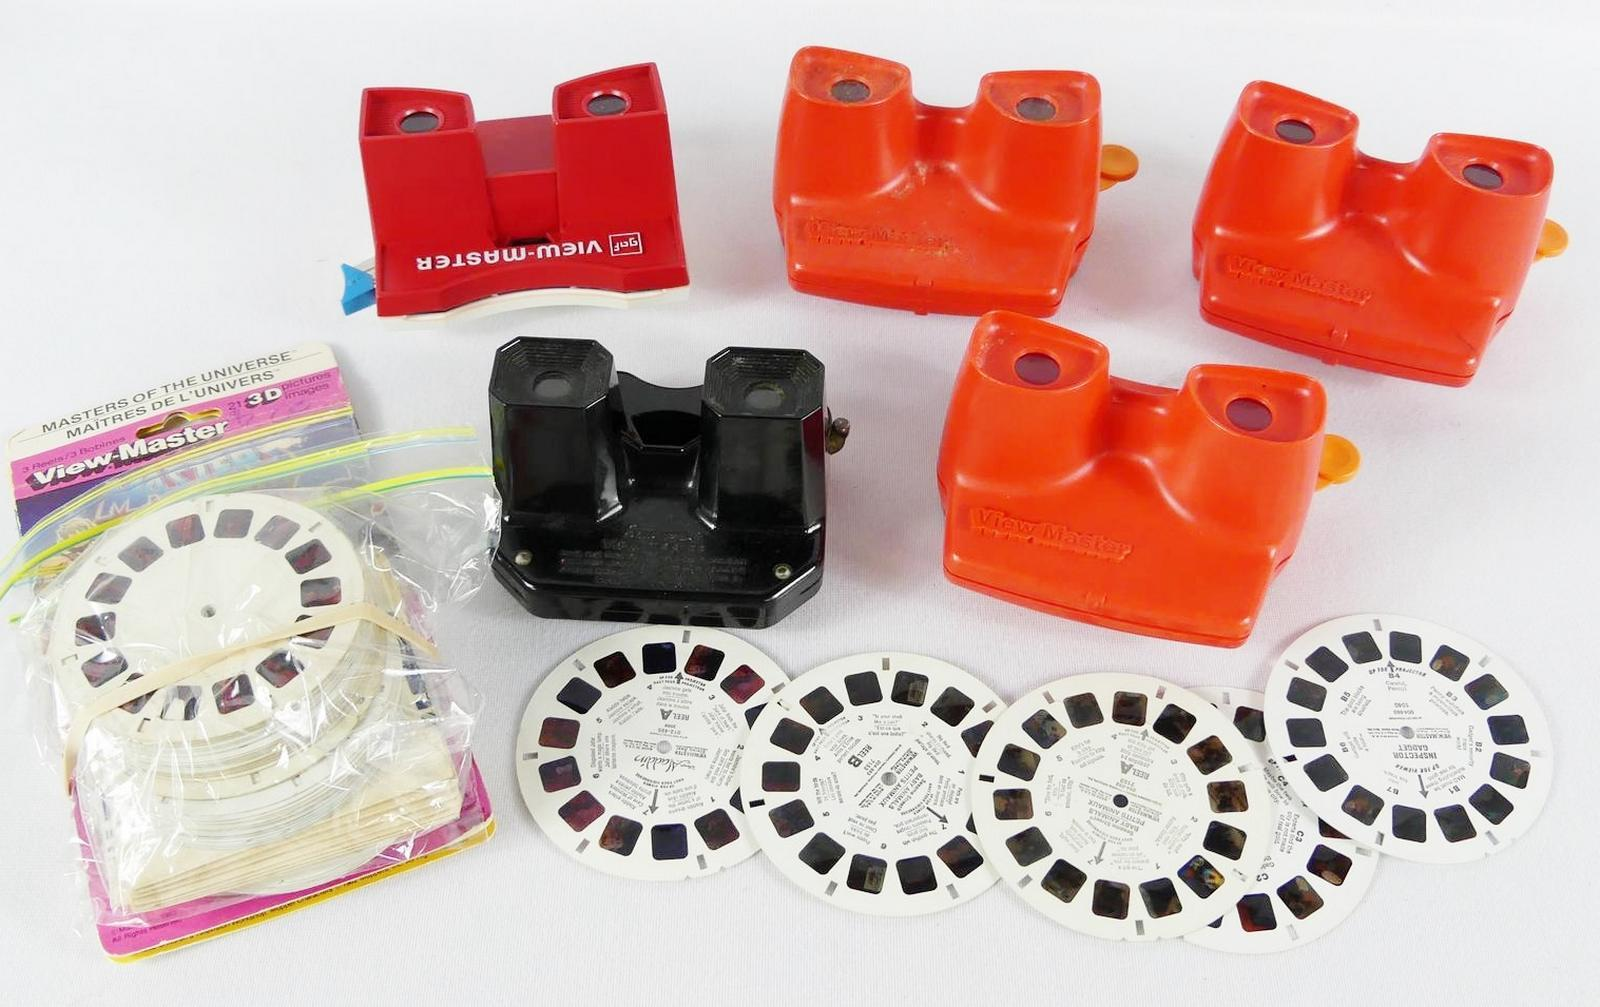 VIEW-MASTERS AND REELS